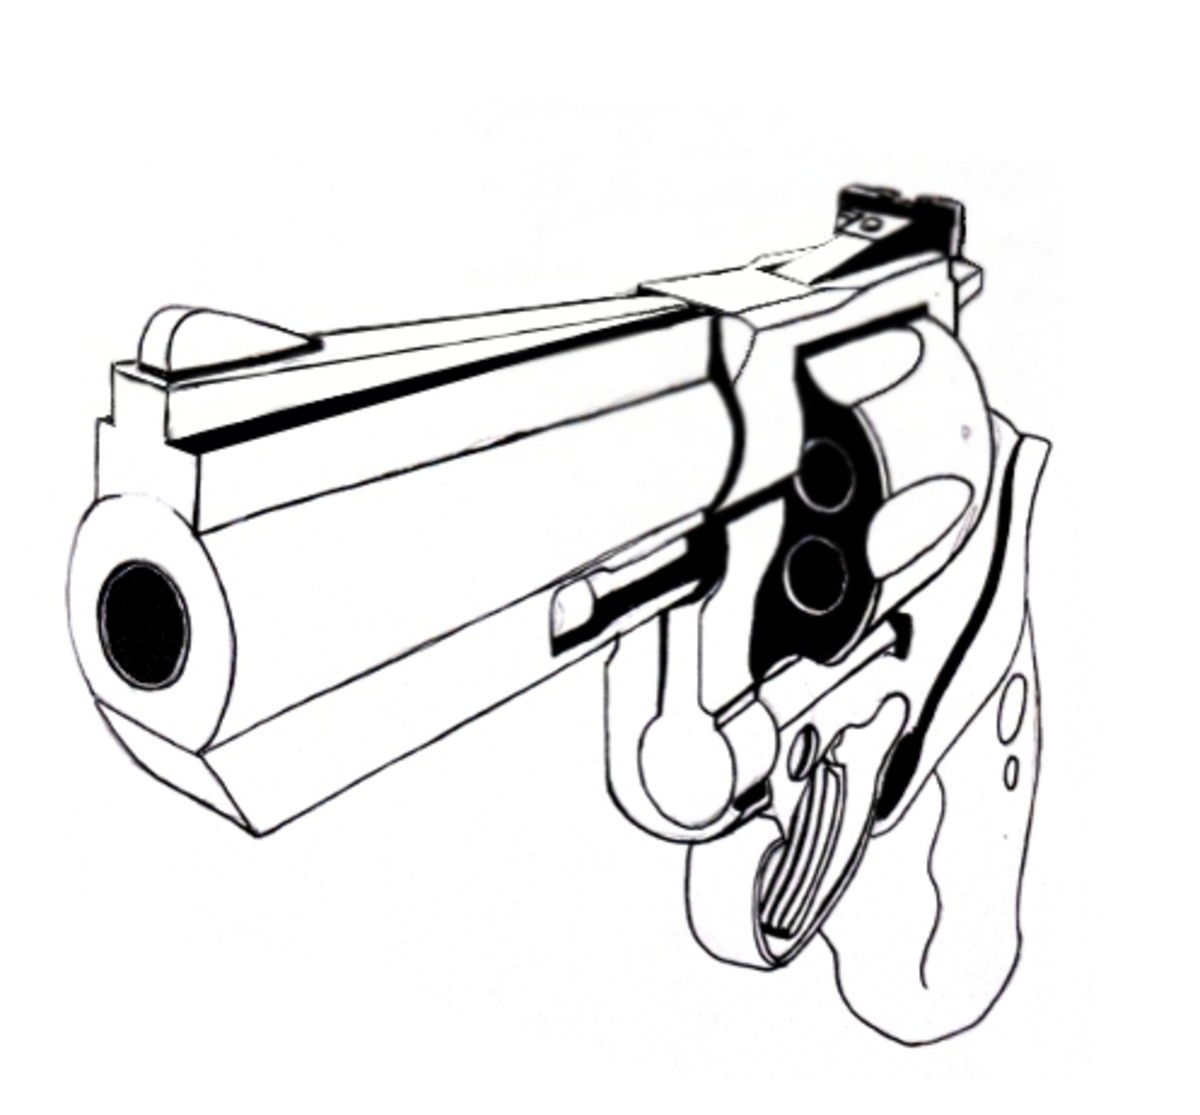 Gun Pencil Drawings to be a Drawing of a Gun